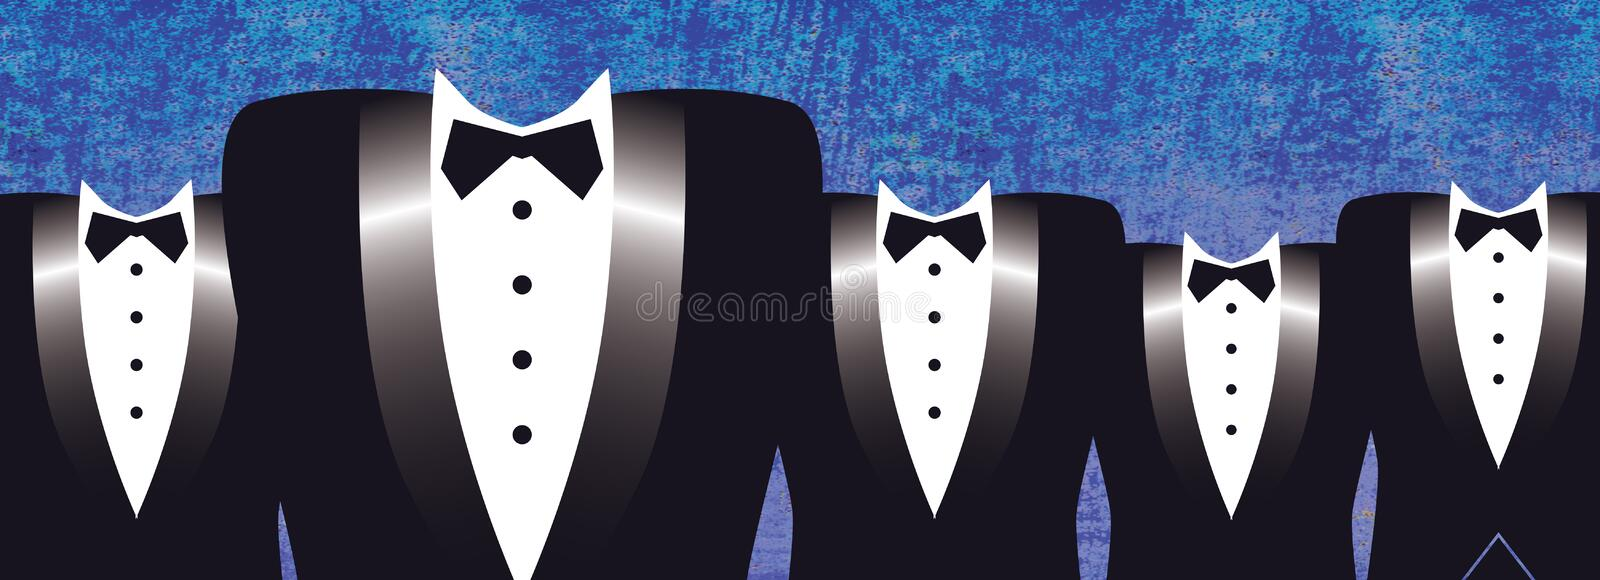 Tuxedo Formal. It's a night on the town with these five tuxedo wearing men, in formal black. From wedding to prom to an evening out, this is a perfect page for vector illustration